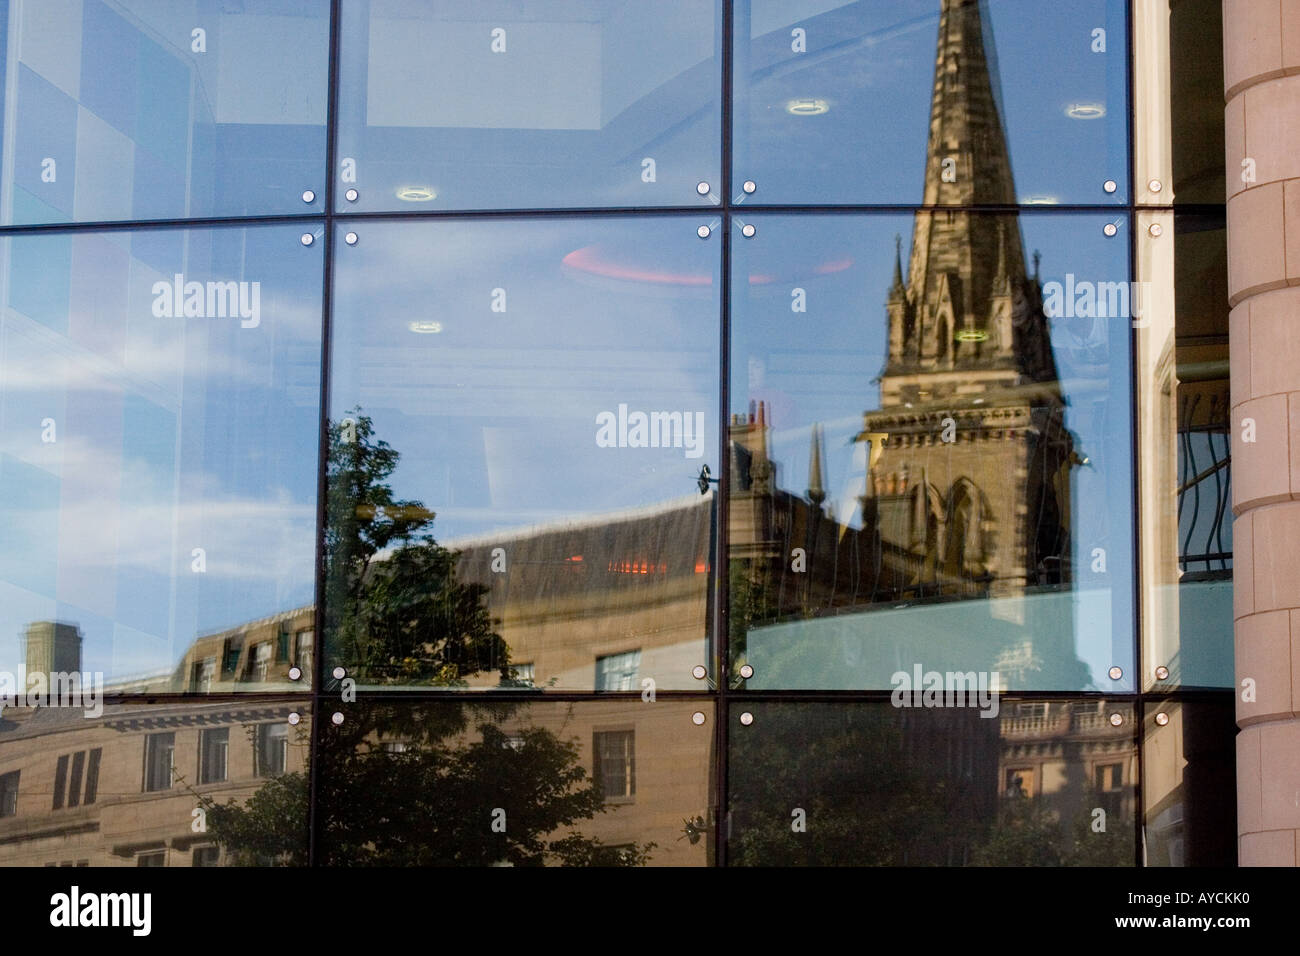 Reflections of St Paul`s church through the large front windows of the Overgate shopping mall windows in Dundee,UK - Stock Image